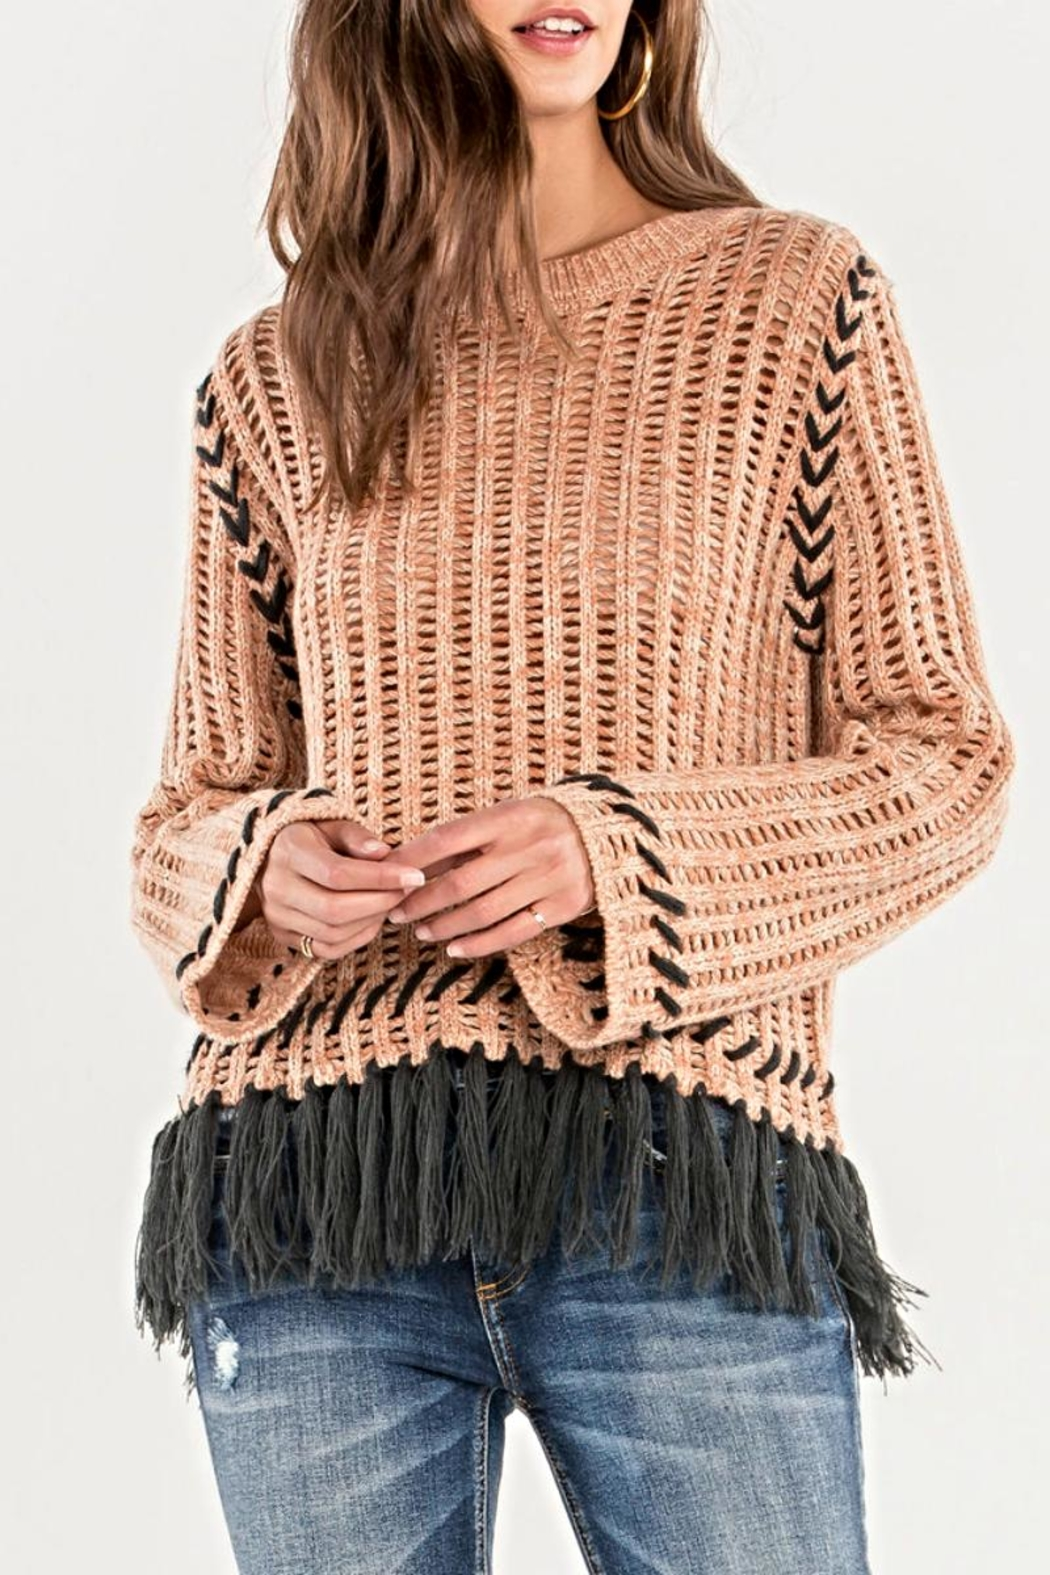 Miss Me Fringe Knit Sweater - Main Image